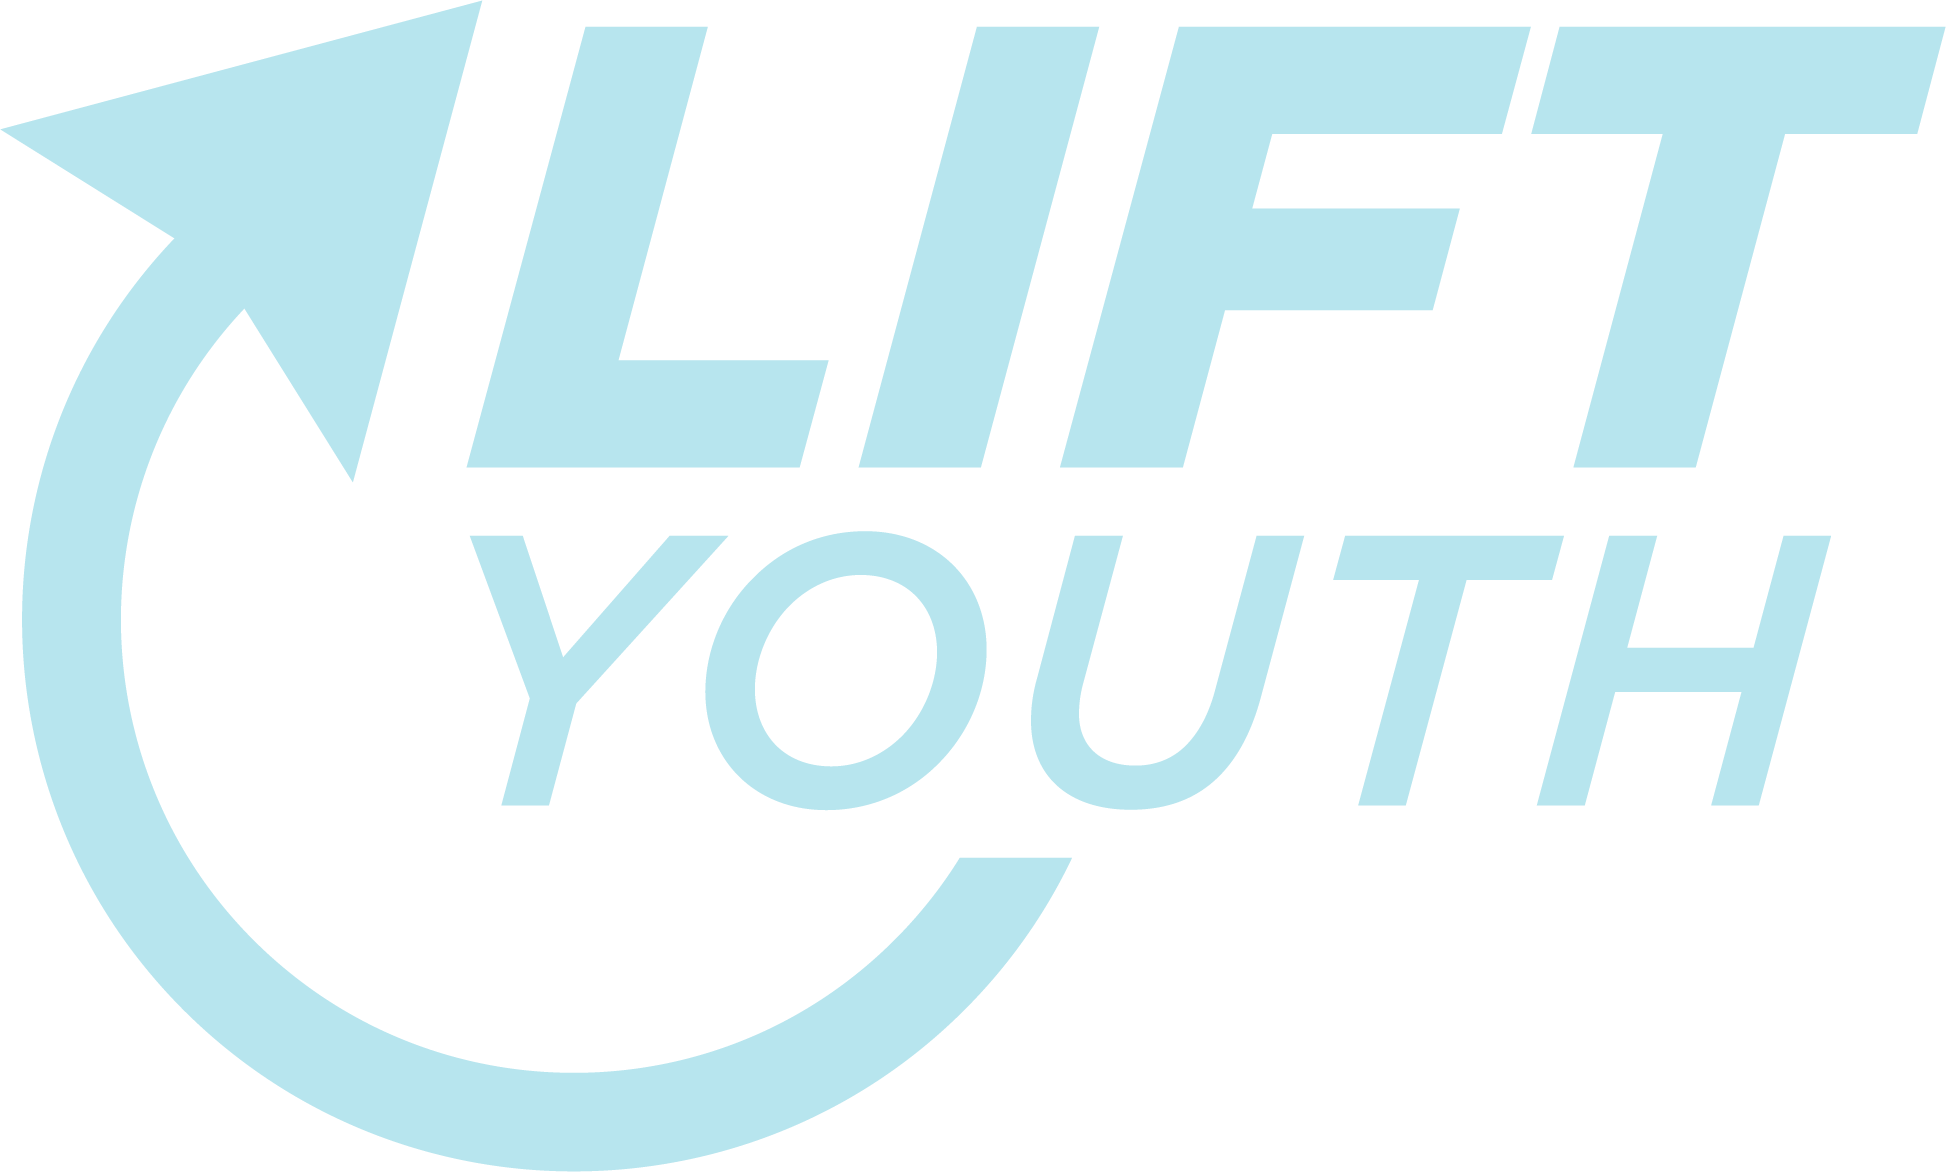 LIFT YOUTH LOGO.PNG